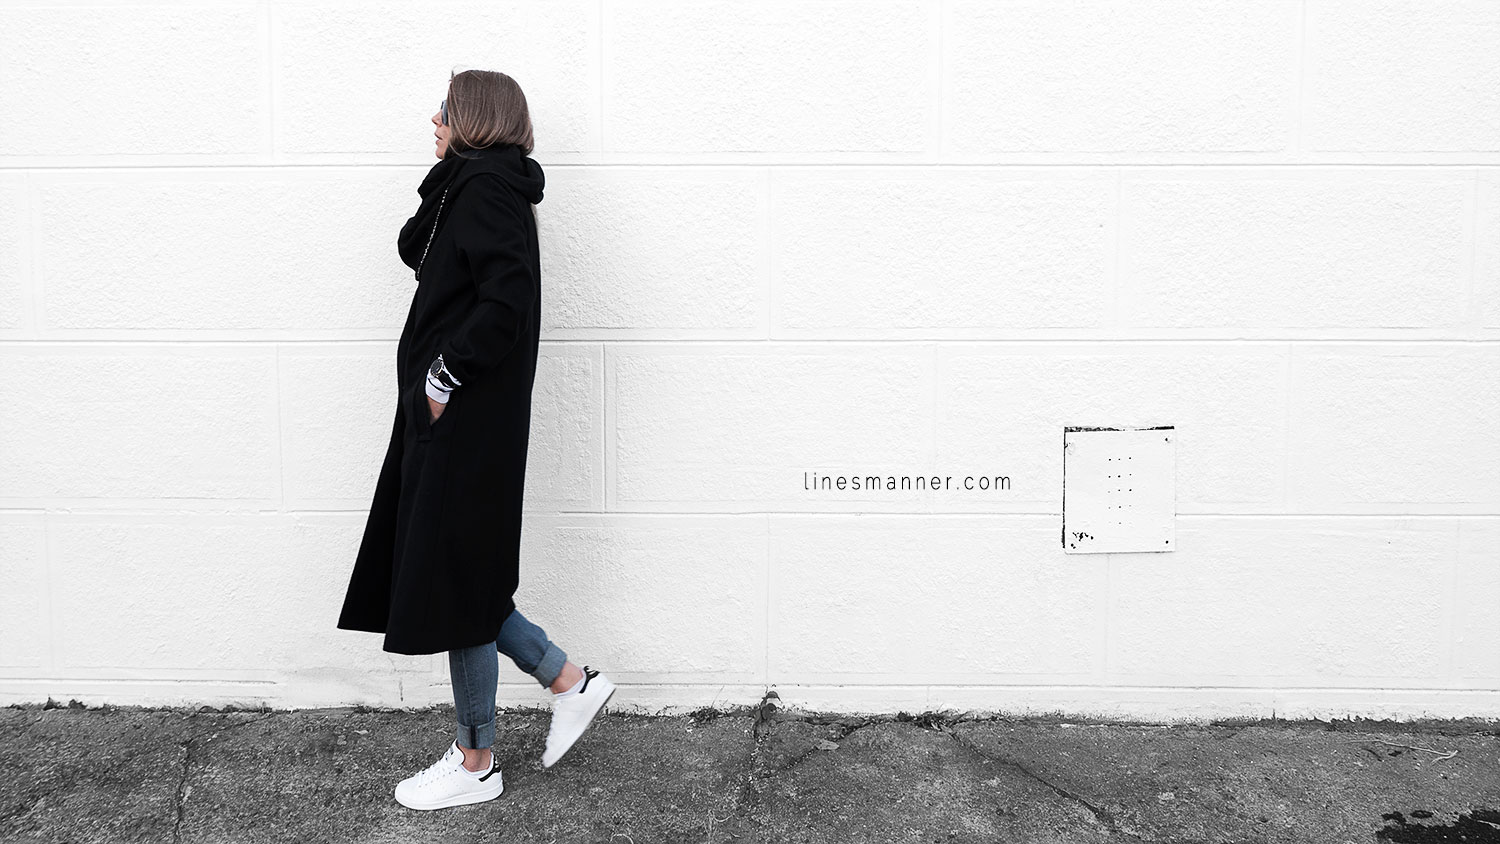 Lines-Manner-Remind-2015-Minimal-Essential-Outfit-Inspiration-Blog-Timeless-Year-Seasons-Details-Travel-Fashion-Versatile-Clean-Sleek-Quality-59